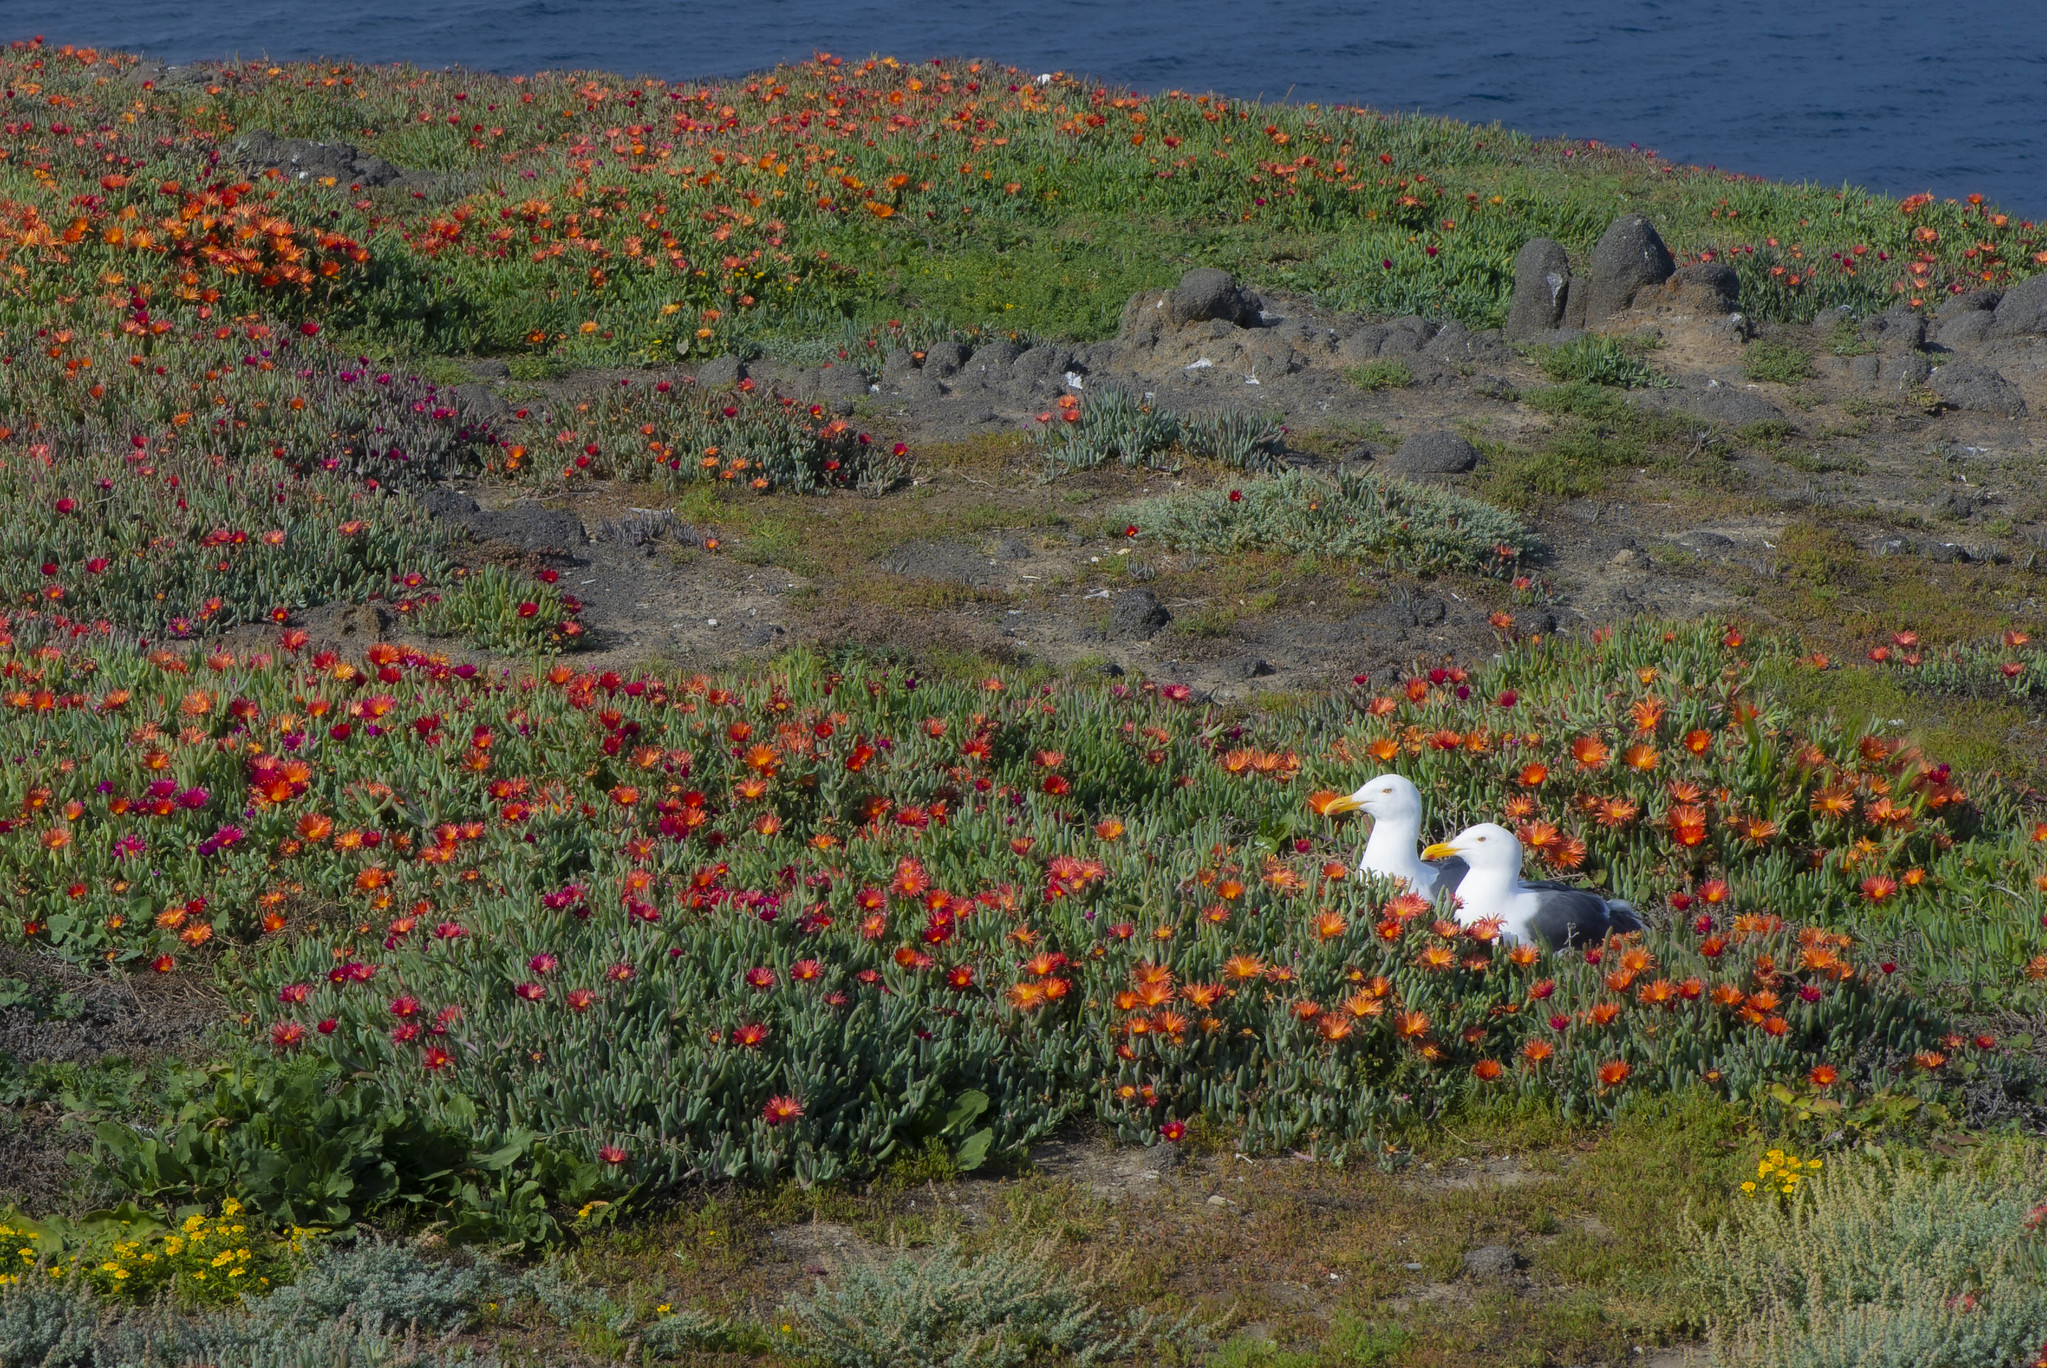 Anacapa - Couple in Ice Plant Blooms